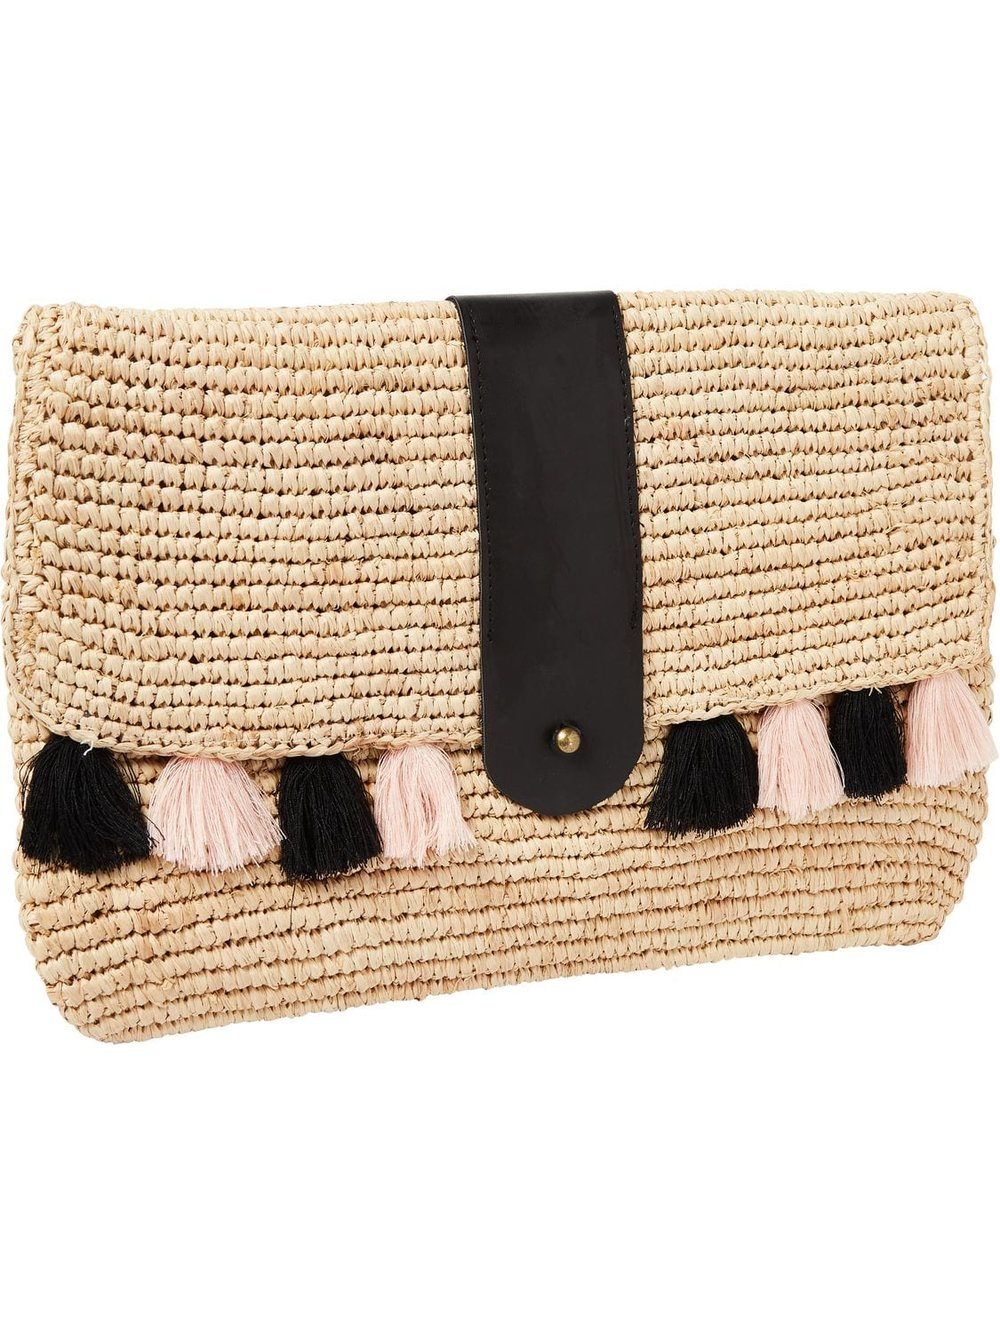 ASOS Maison Scotch Exclusive Wicker Clutch With Tassles